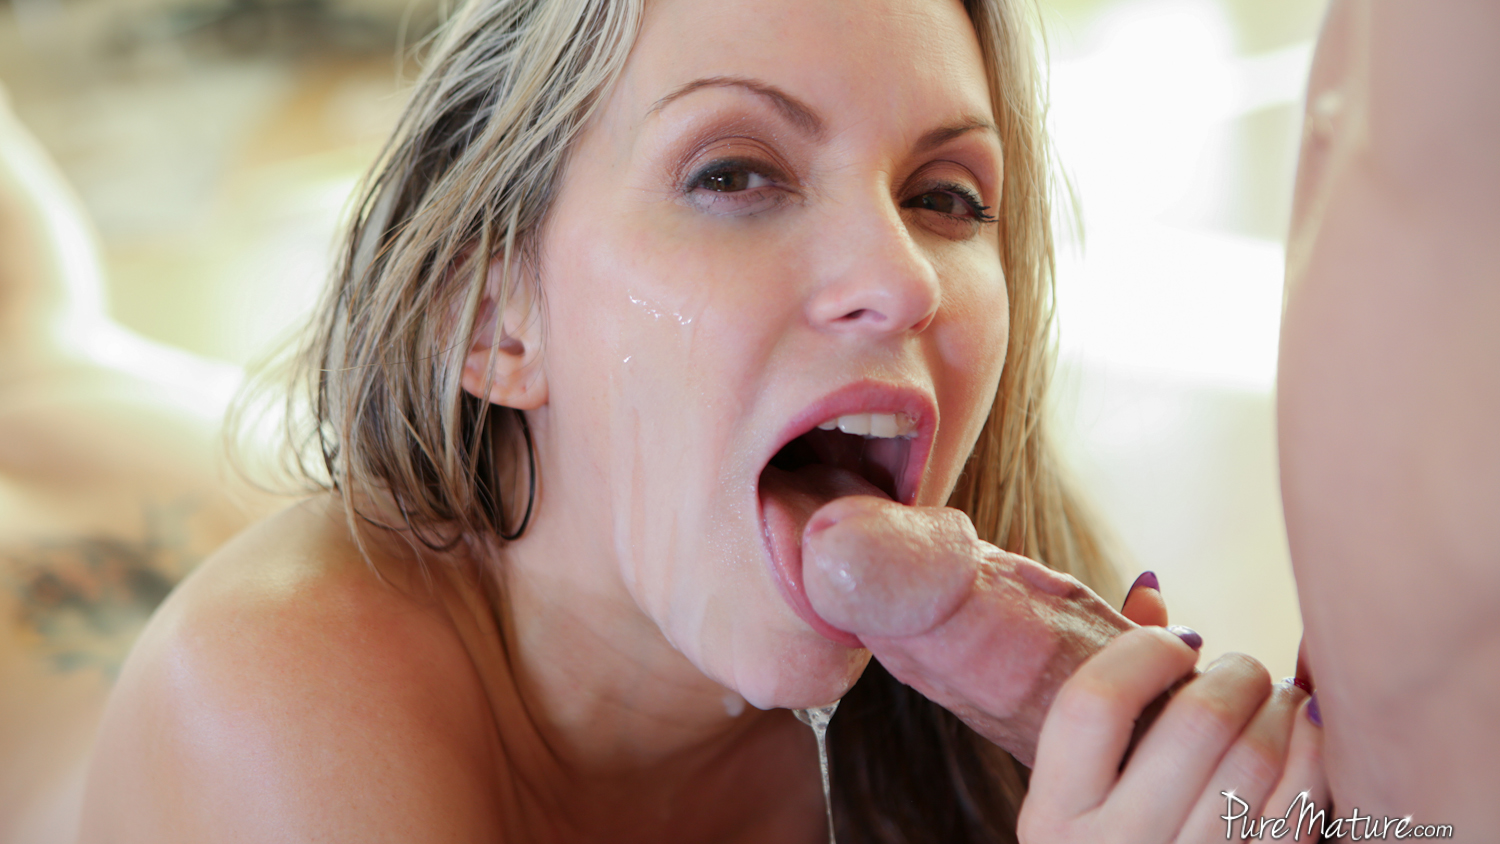 Small tit blonde cums with dildo 9